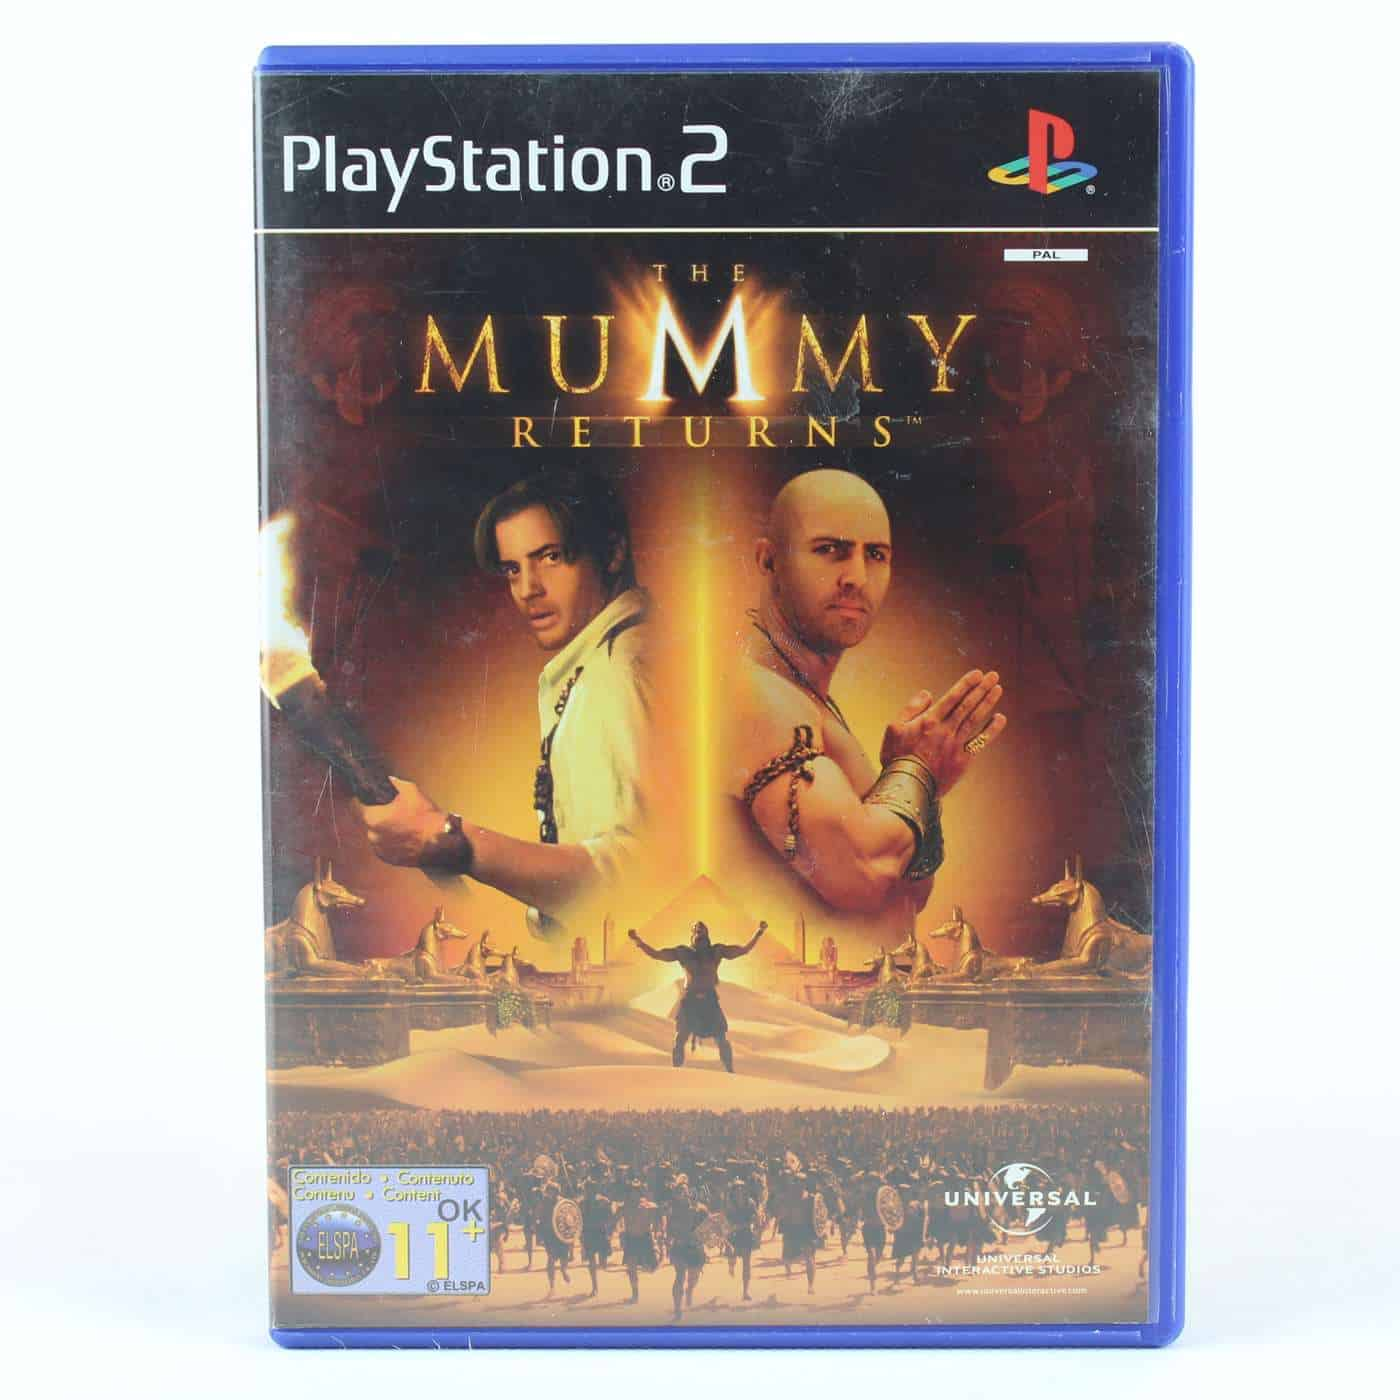 The Mummy Returns (Playstation 2)